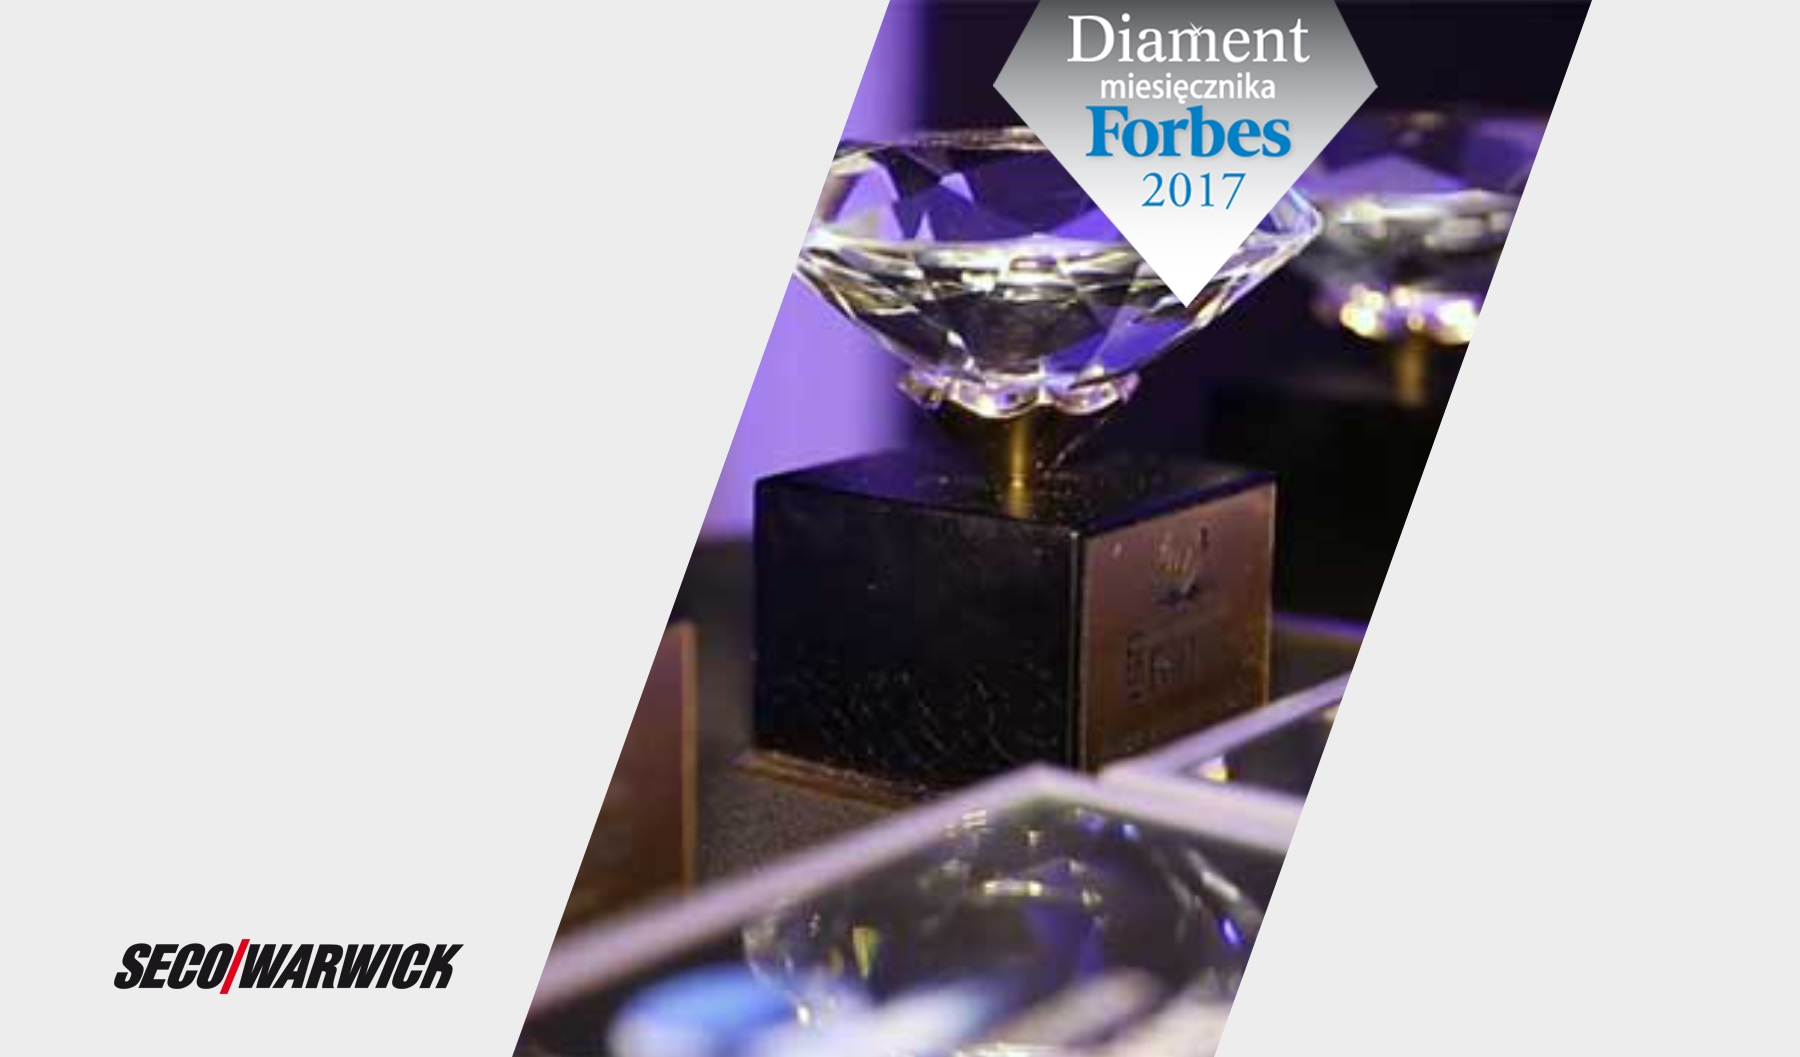 Forbes Diamonds for the best companies. Among them – SECO/WARWICK.